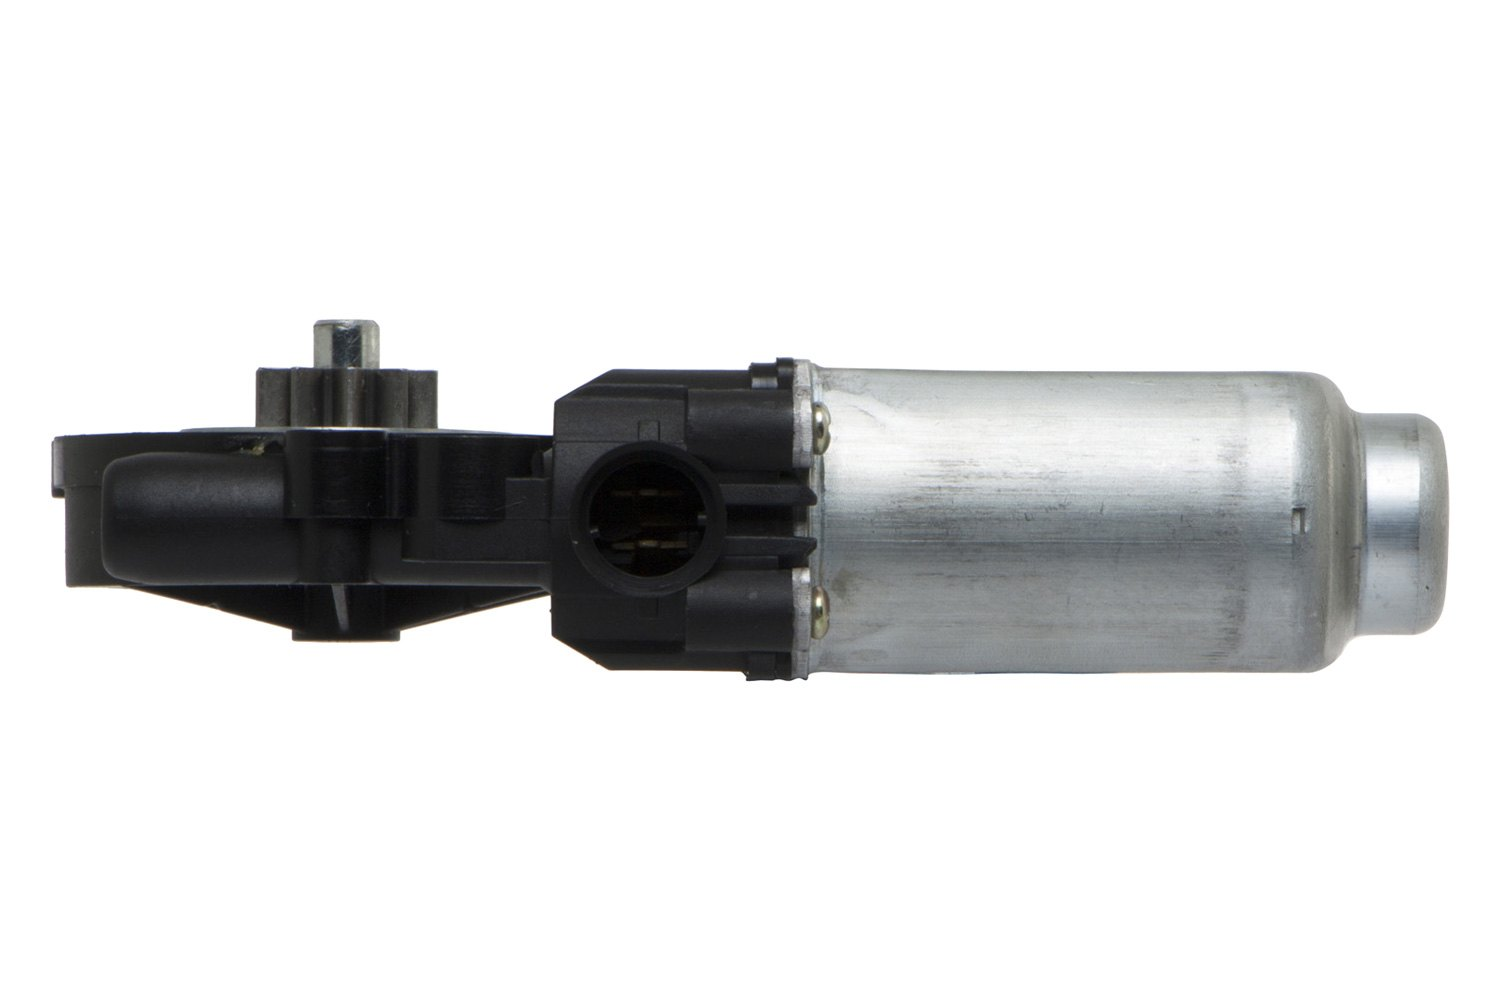 acdelco nissan sentra 2001 professional power window motor